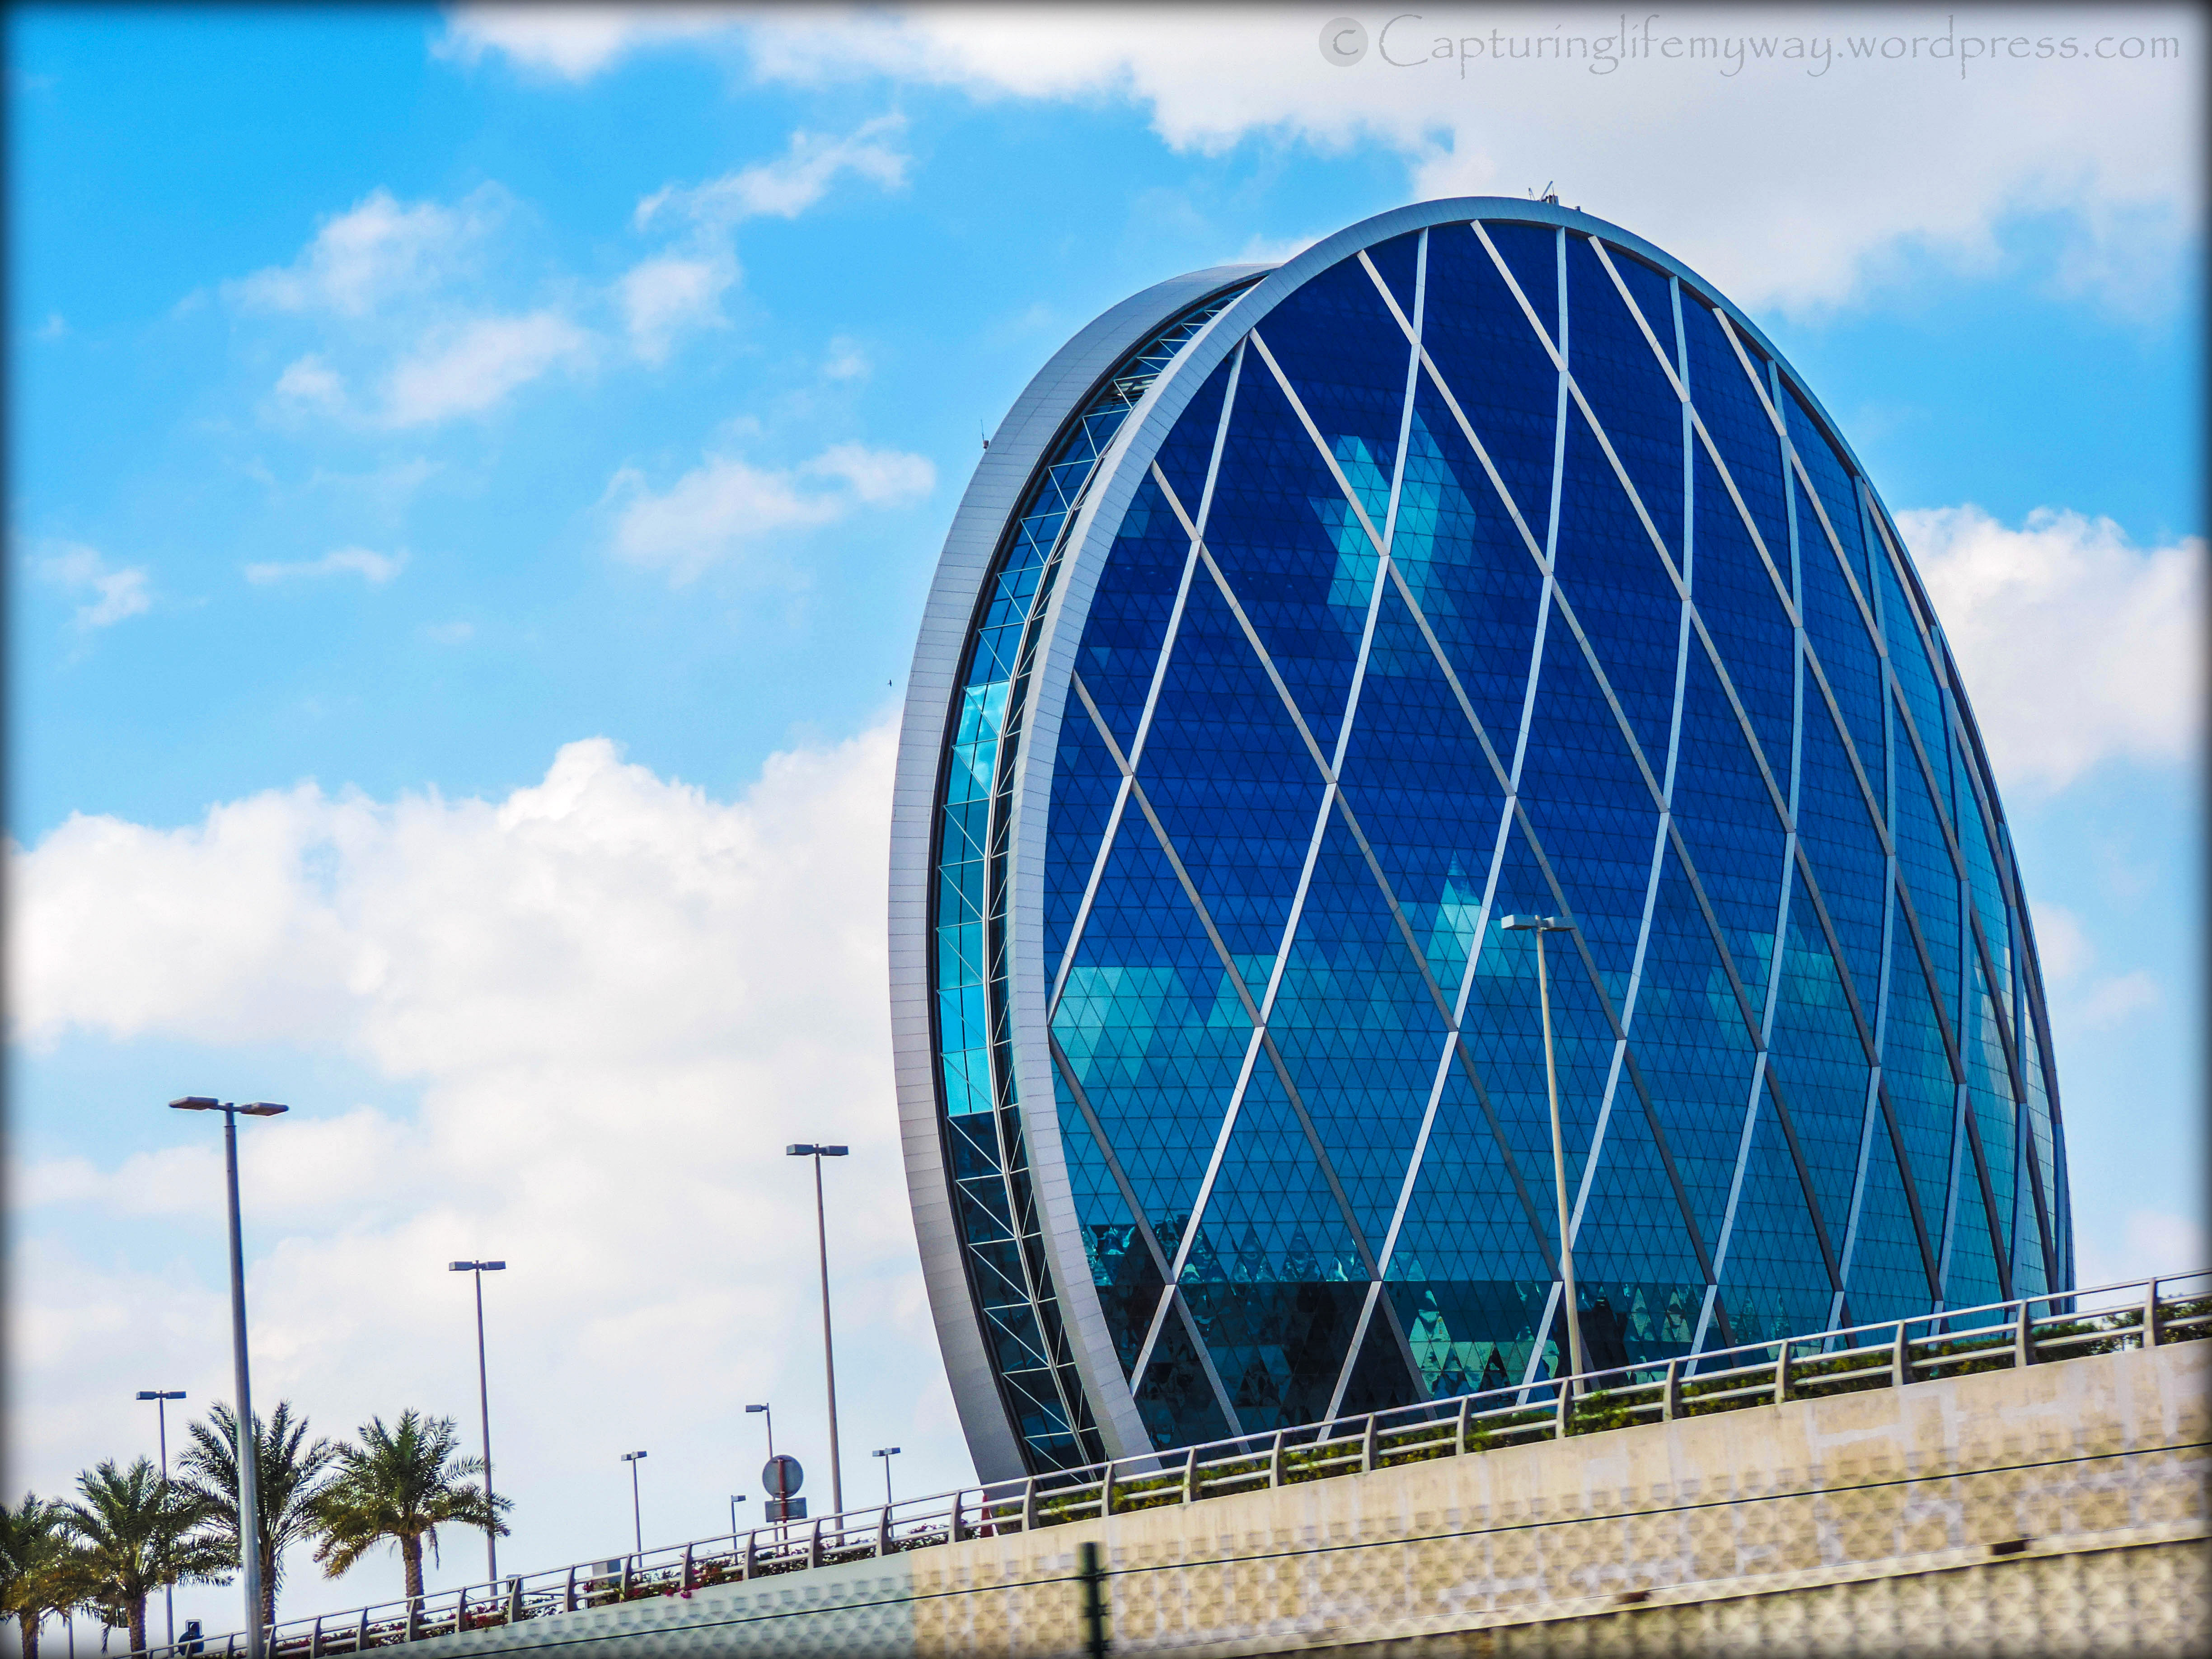 Aldar Headquarters Abu Dhabi, The Disc : Aldar headquarters building, Al Raha, Abu Dhabi, UAE